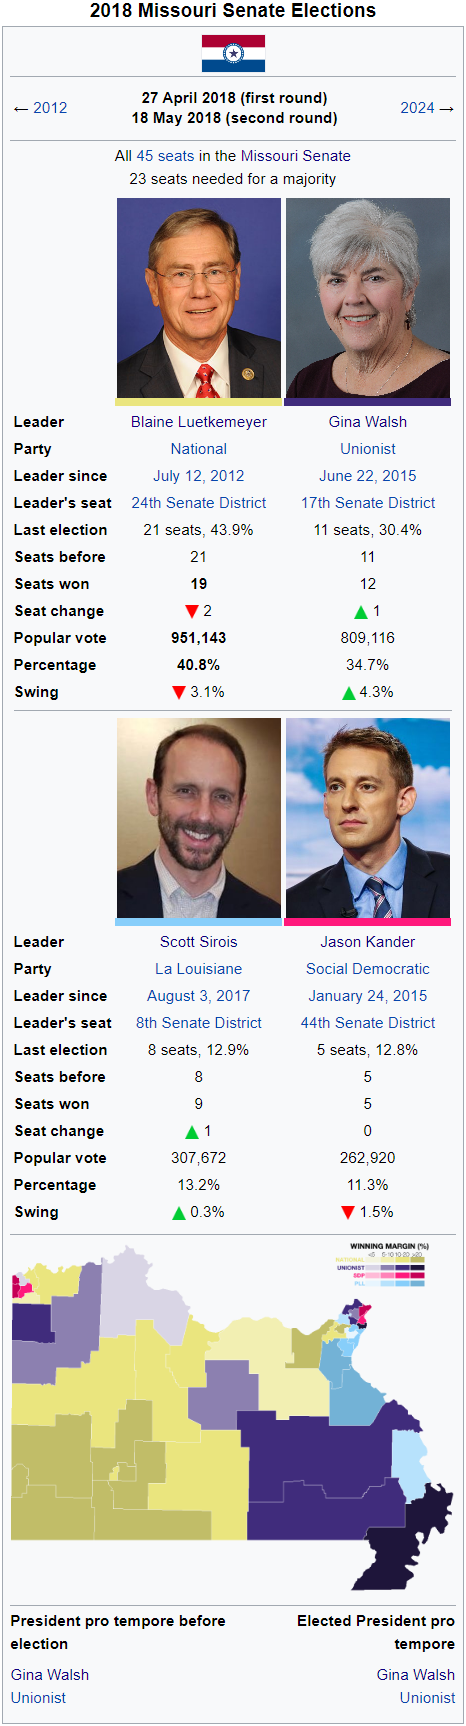 2018 Missouri Senate Election Wiki.png